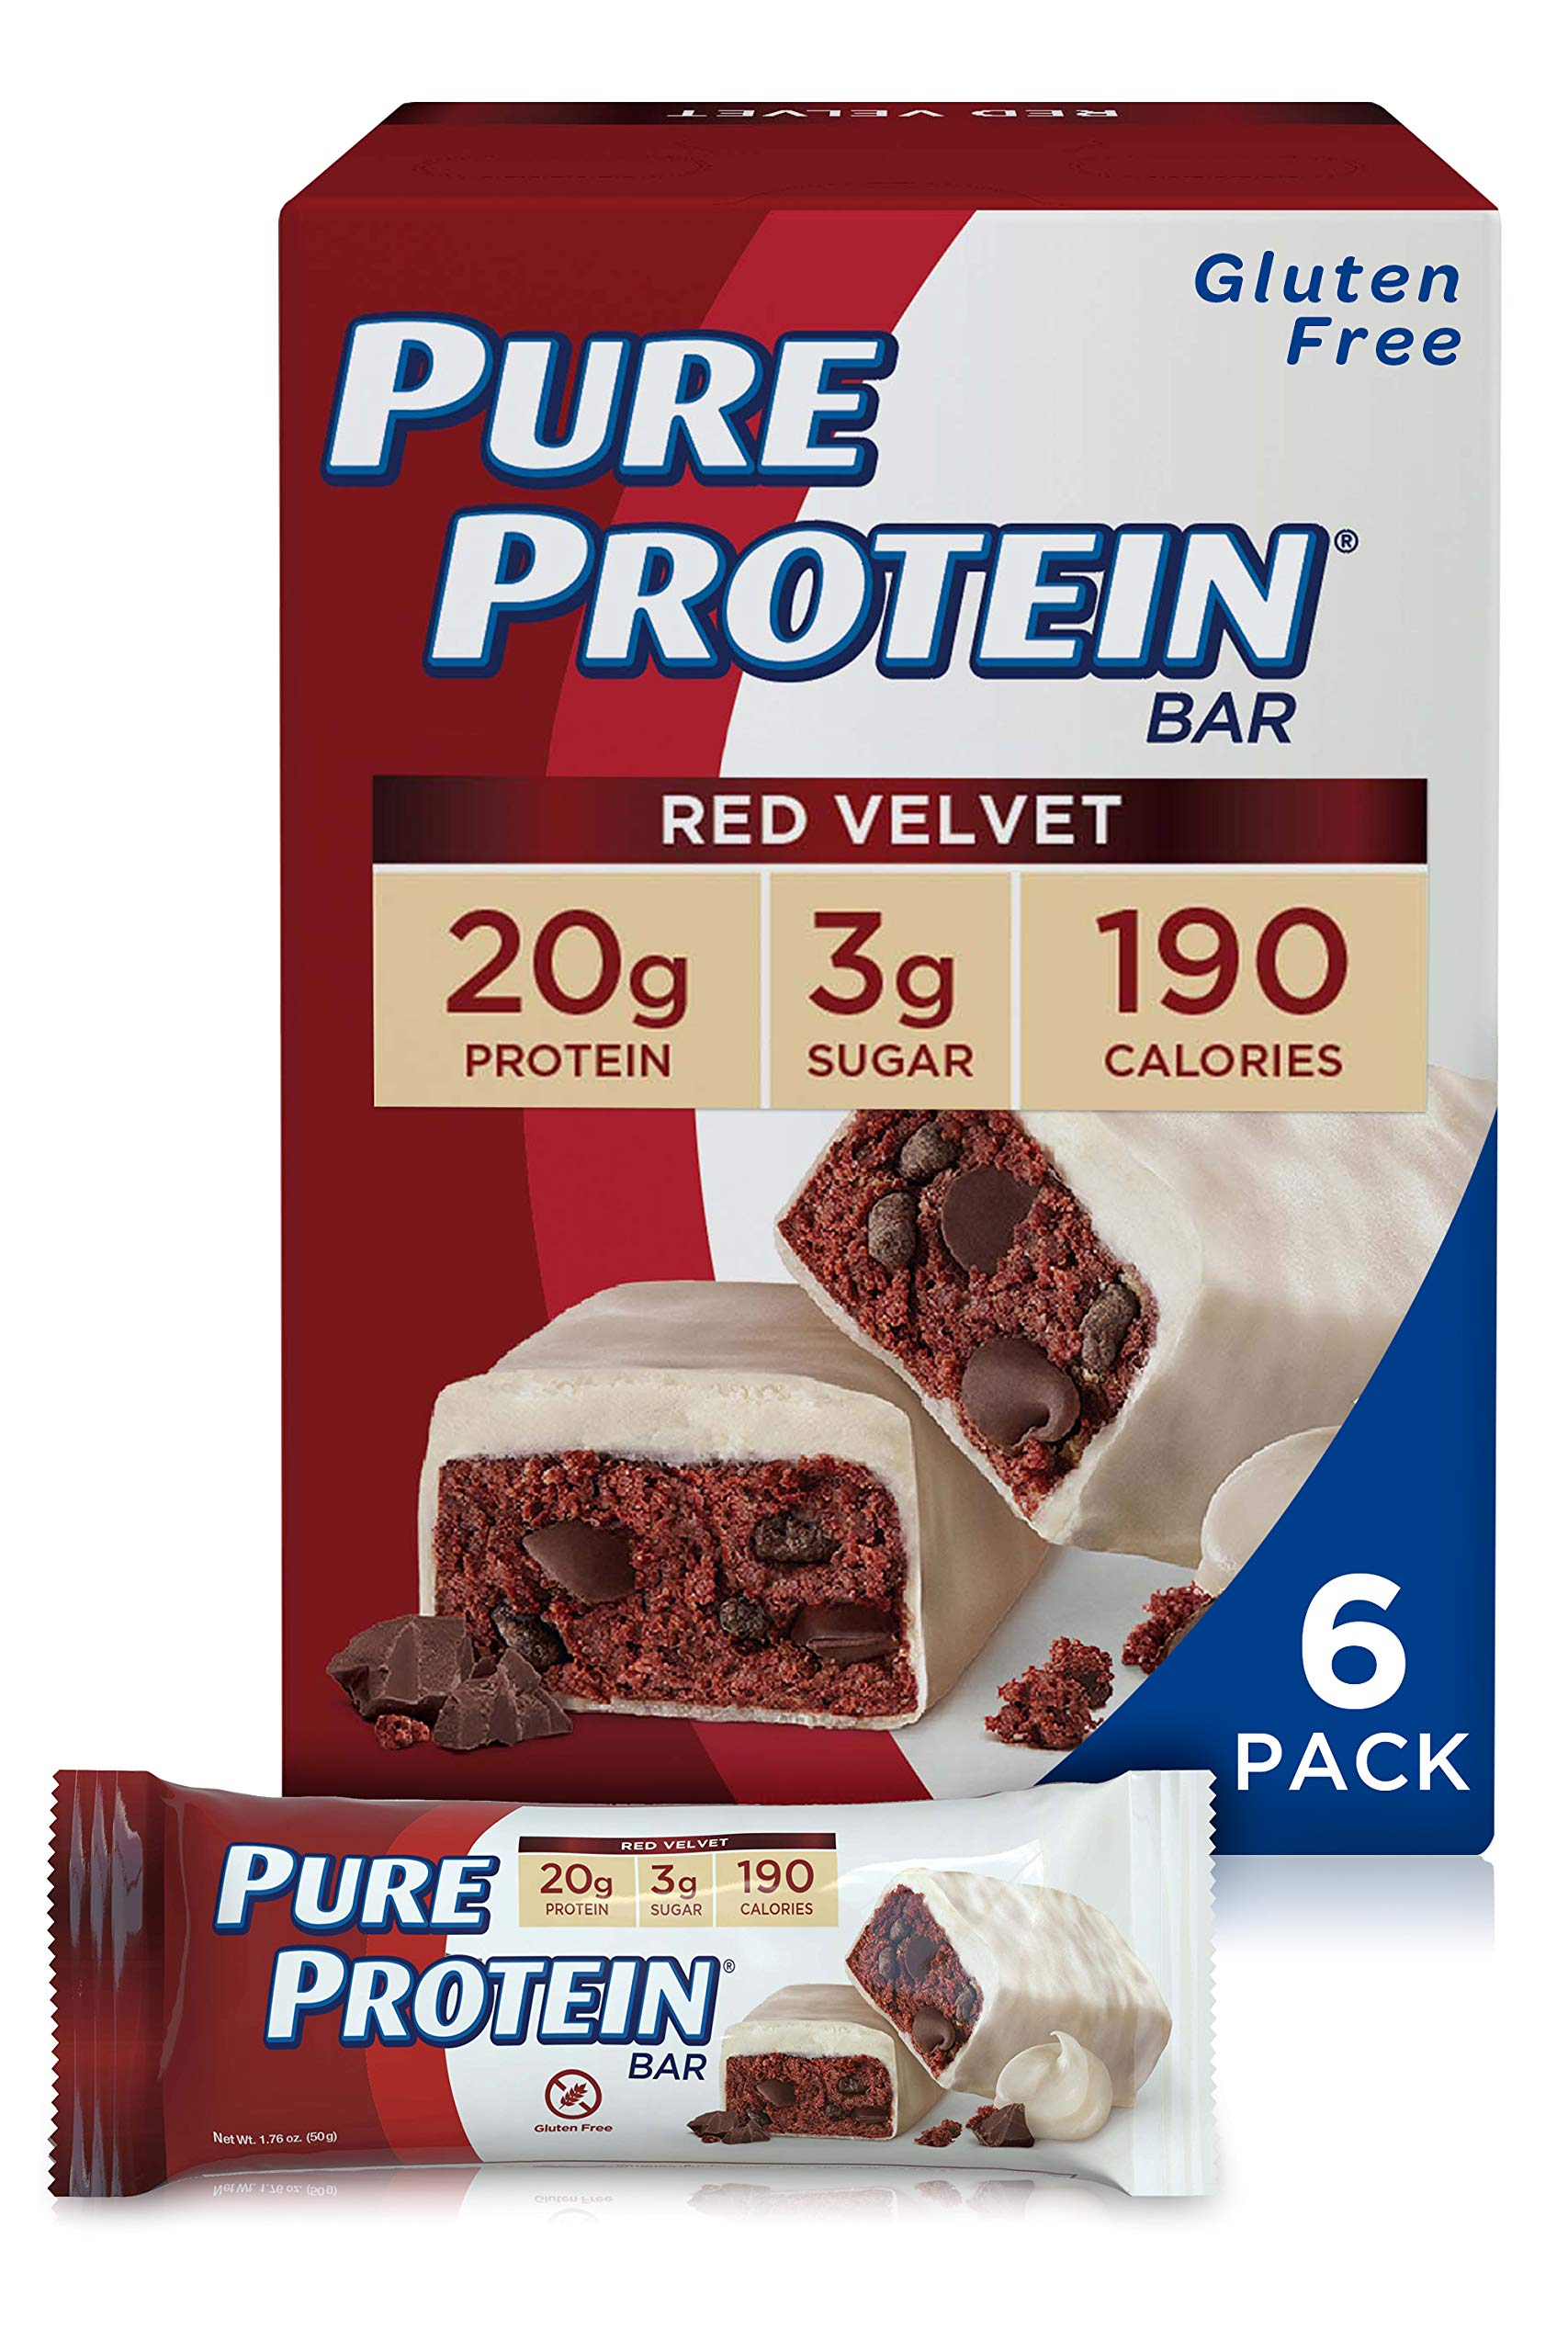 Pure Protein Bars, High Protein, Nutritious Snacks to Support Energy, Low Sugar, Gluten Free, Red Velvet Cake, 1.76 oz, Pack of 6